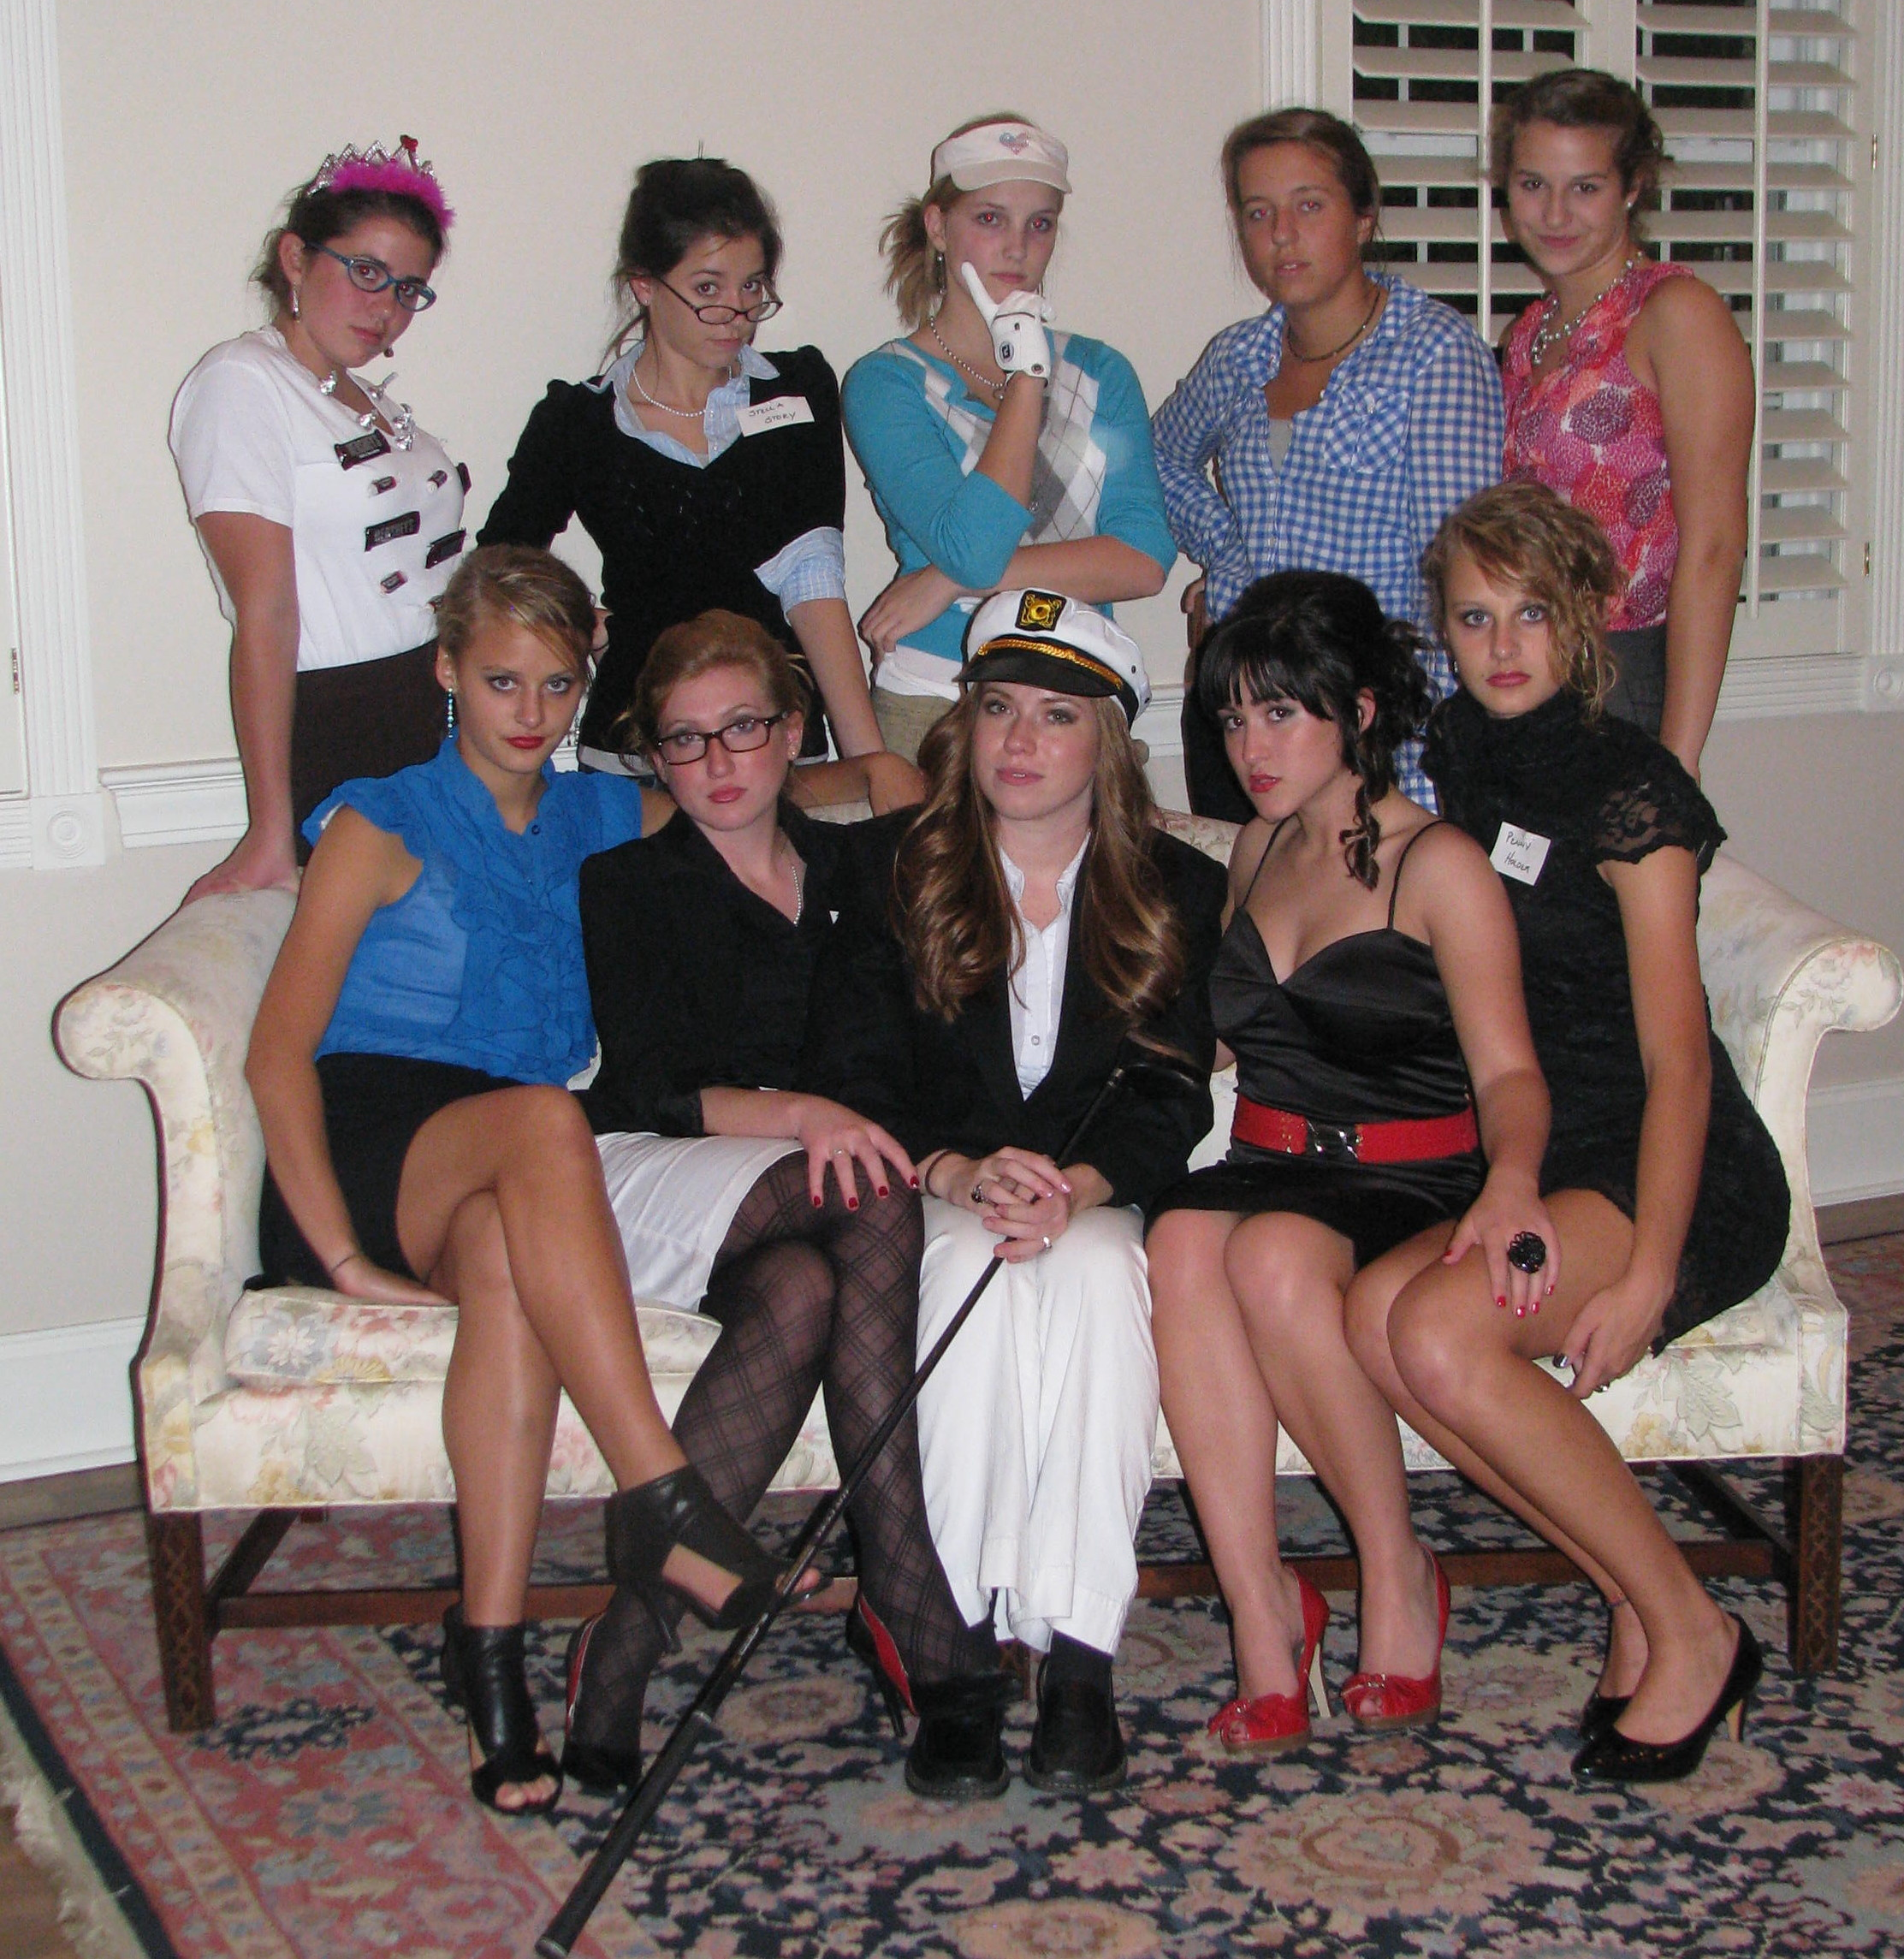 Teen Mystery Party Games 24